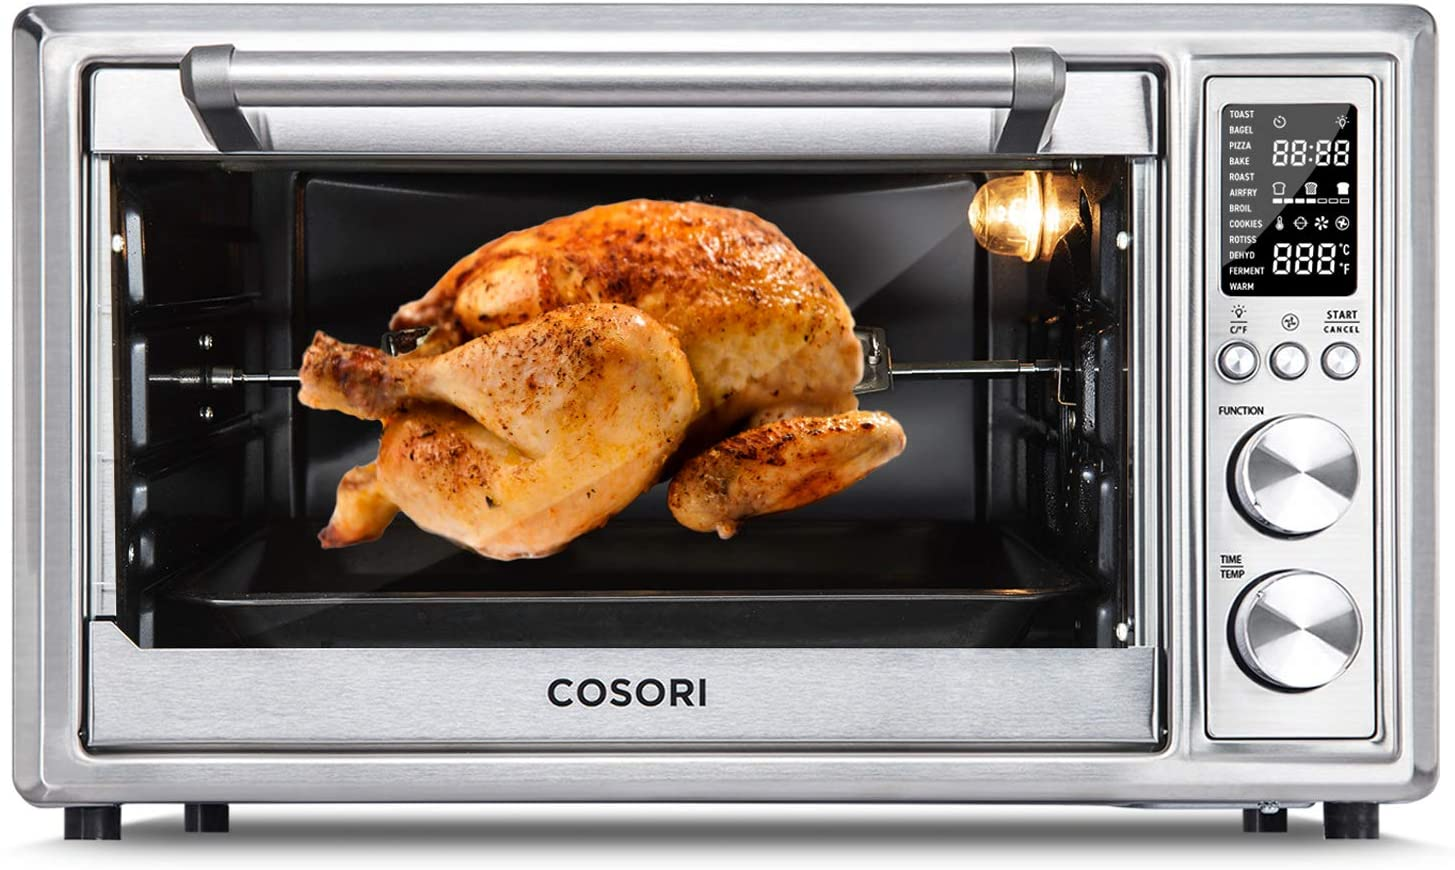 Cosori Air Fryer Toaster Oven with Rotisserie and Dehydrator